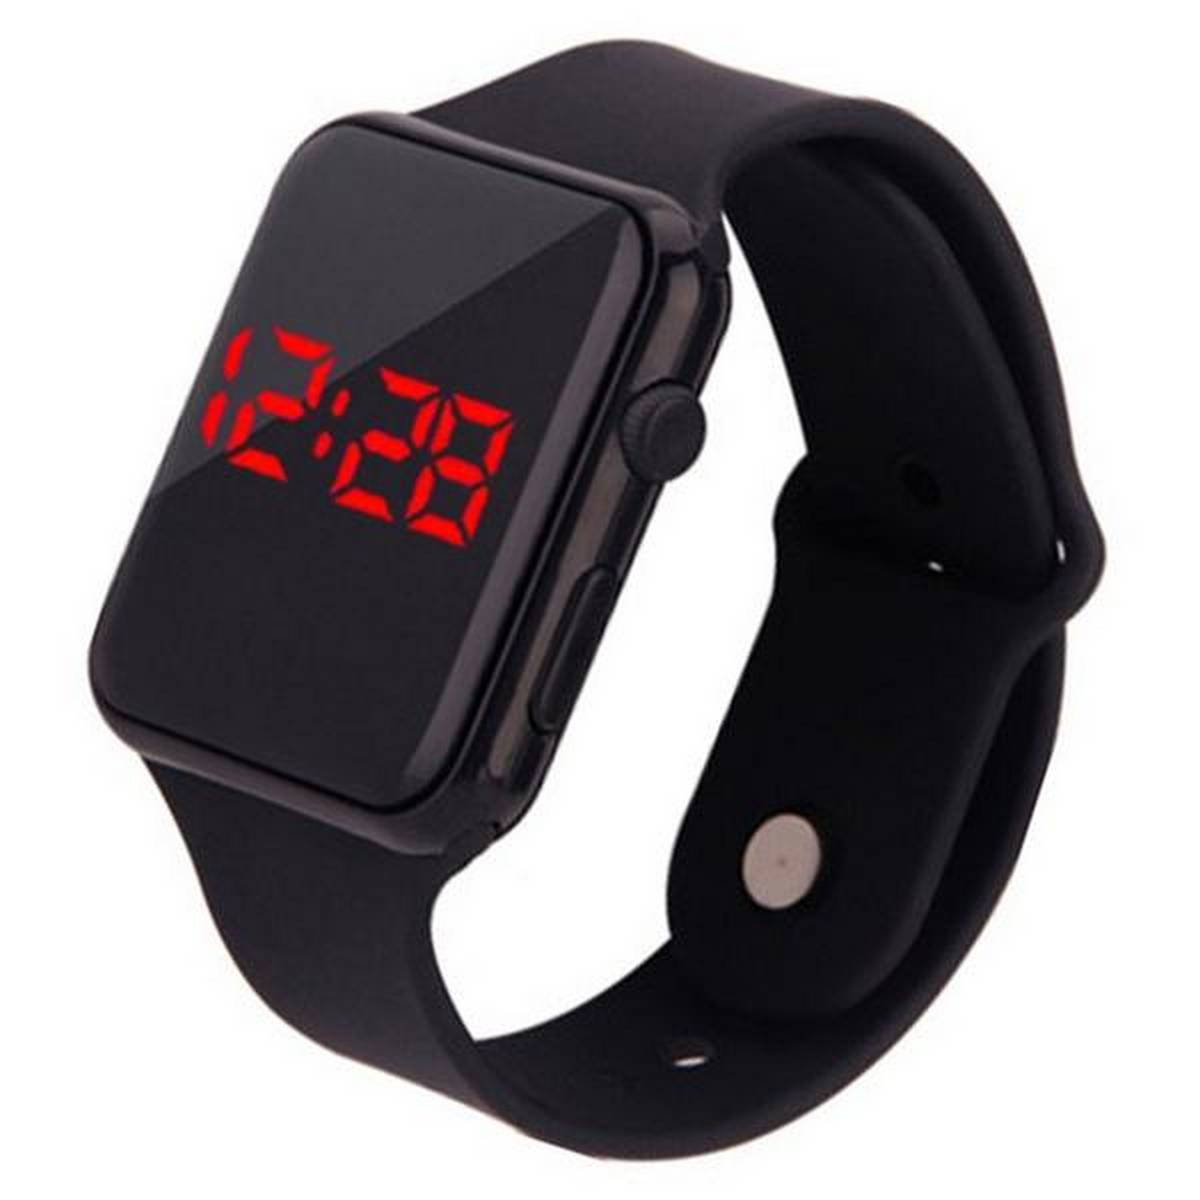 High quality Latest Design Stylish Sports watch Imported  Waterproof LED Digital Touch Screen Day Date Silicone Strap for Boys And Girl